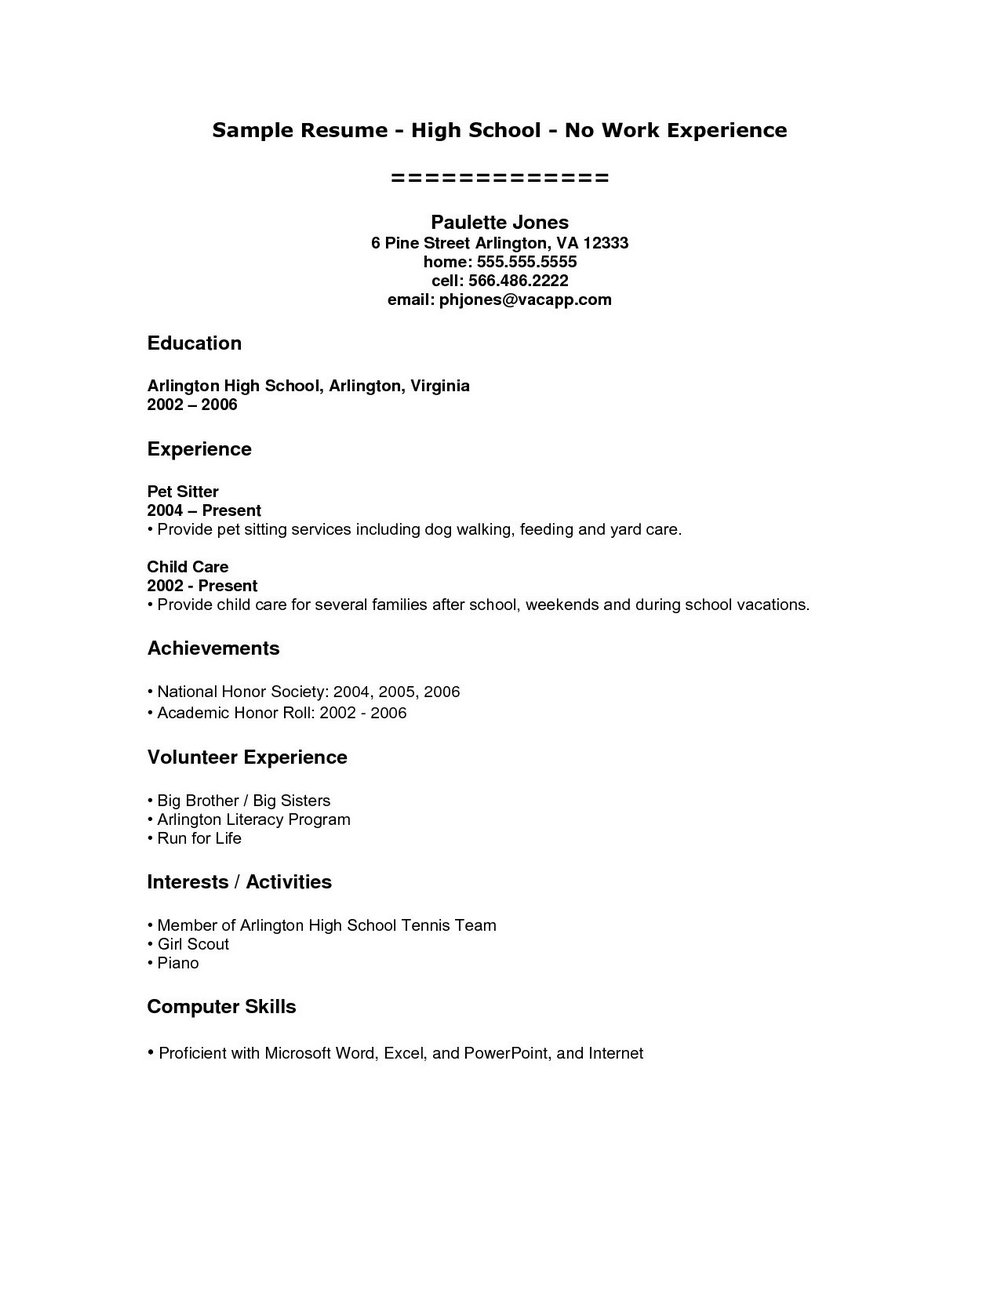 Free High School Resume Templates Microsoft Word